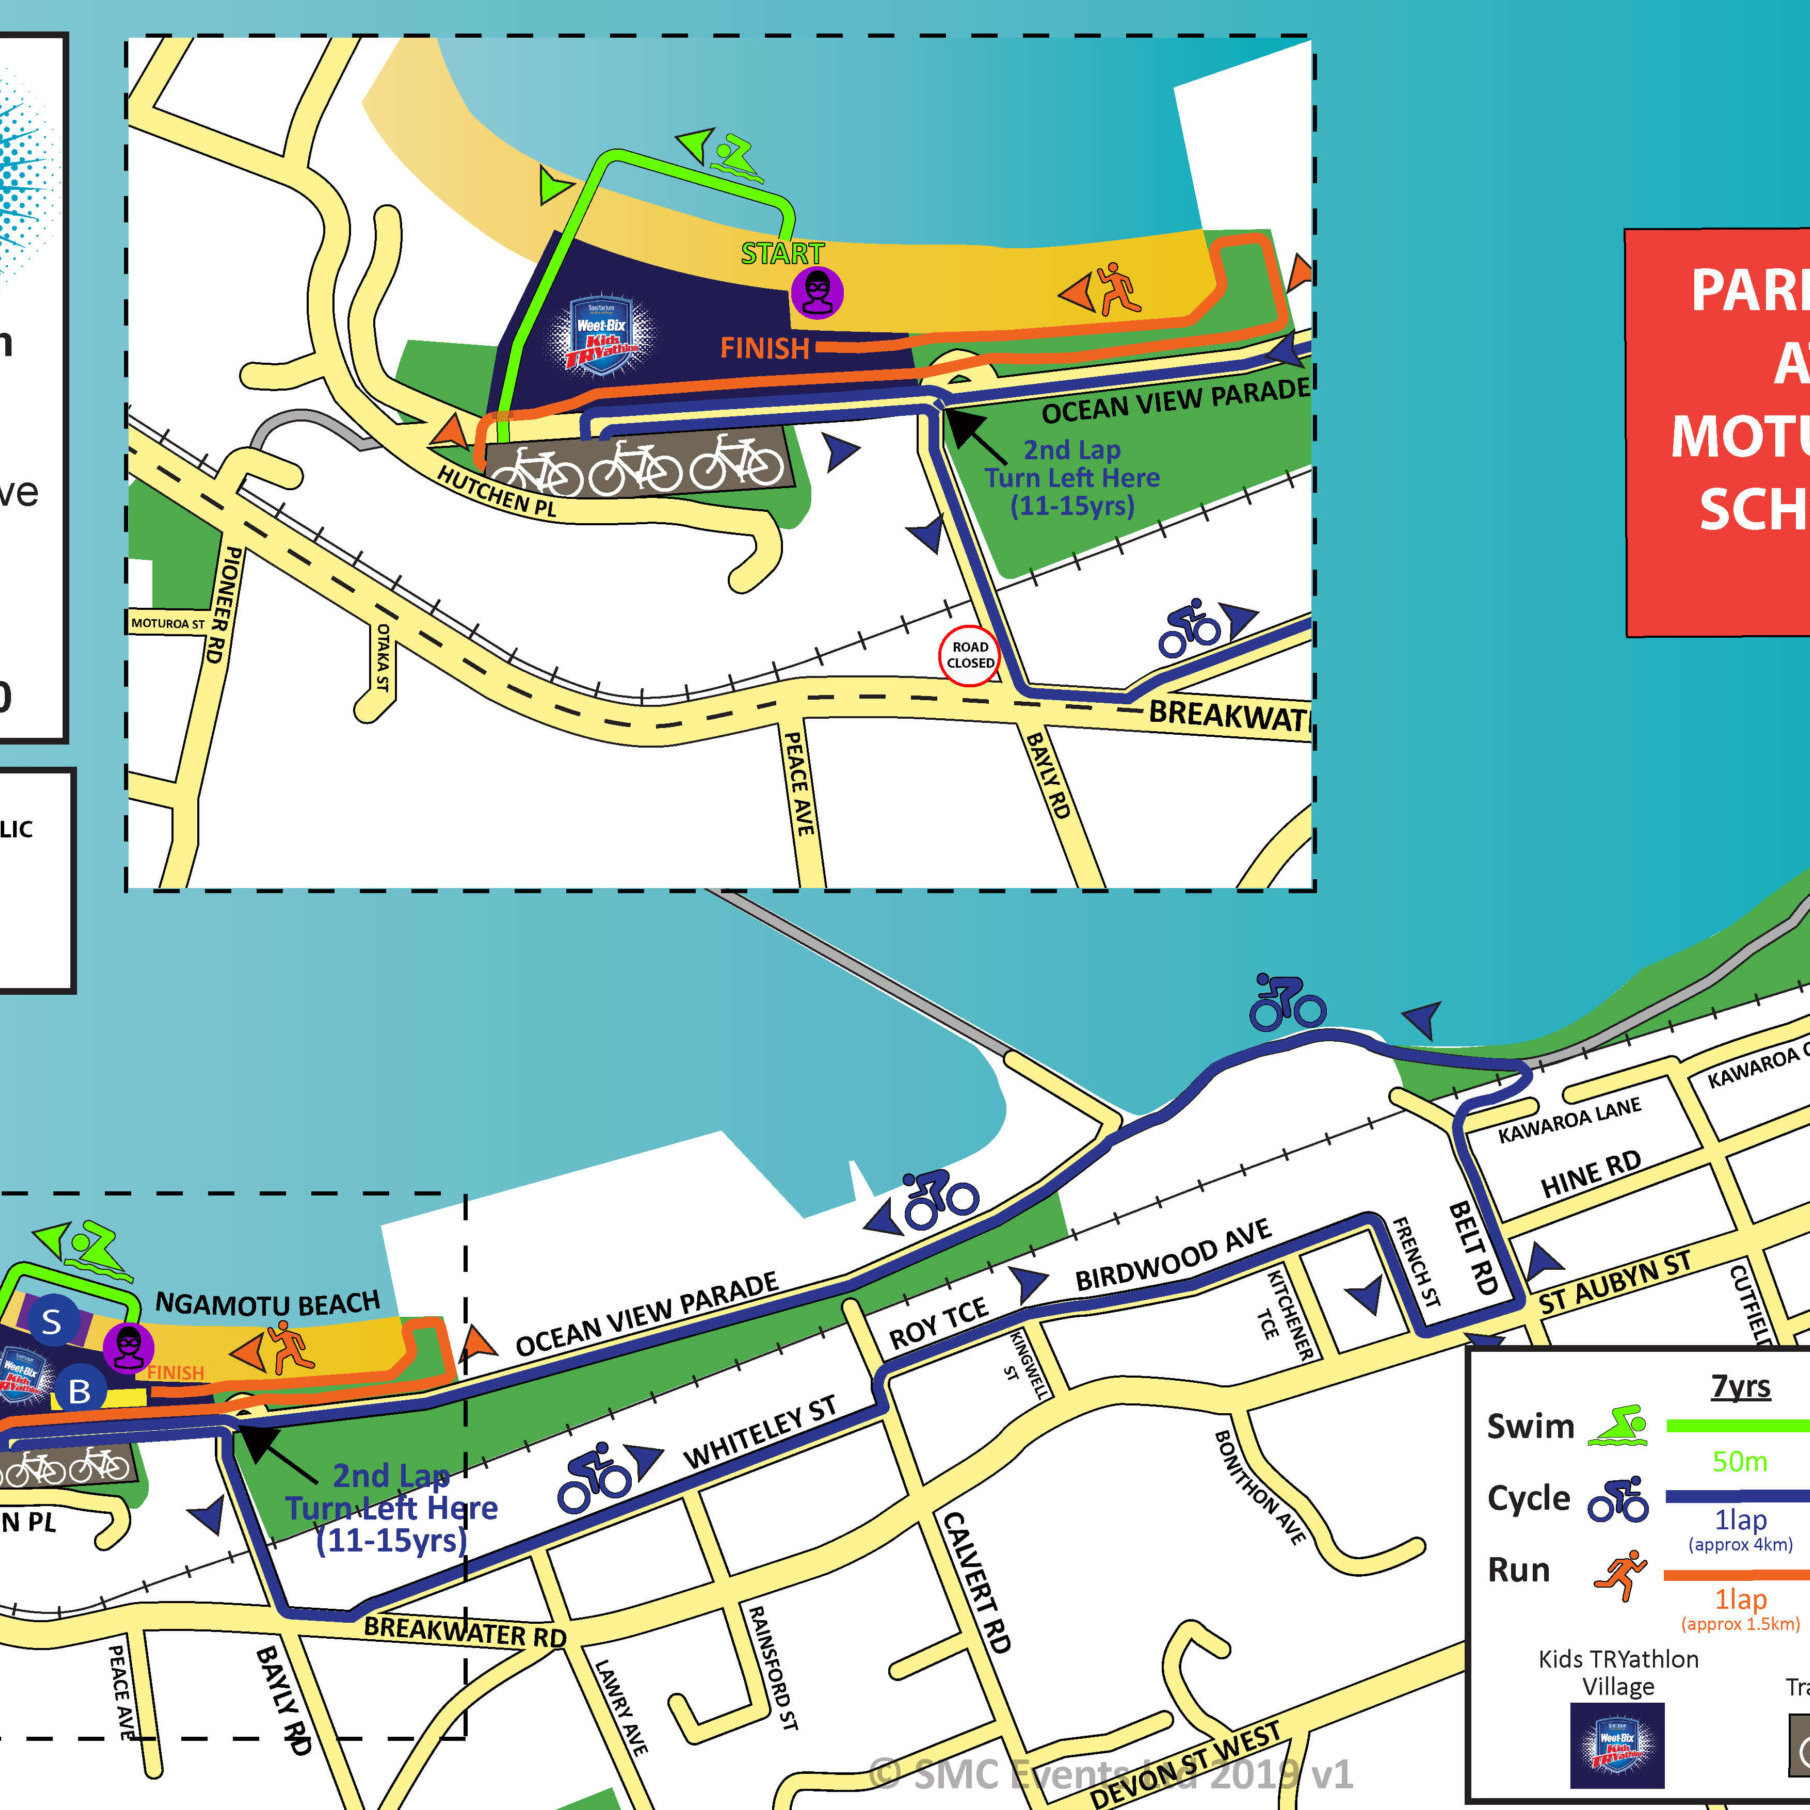 16 - SWBKT New Plymouth Course Map 2020 FINAL